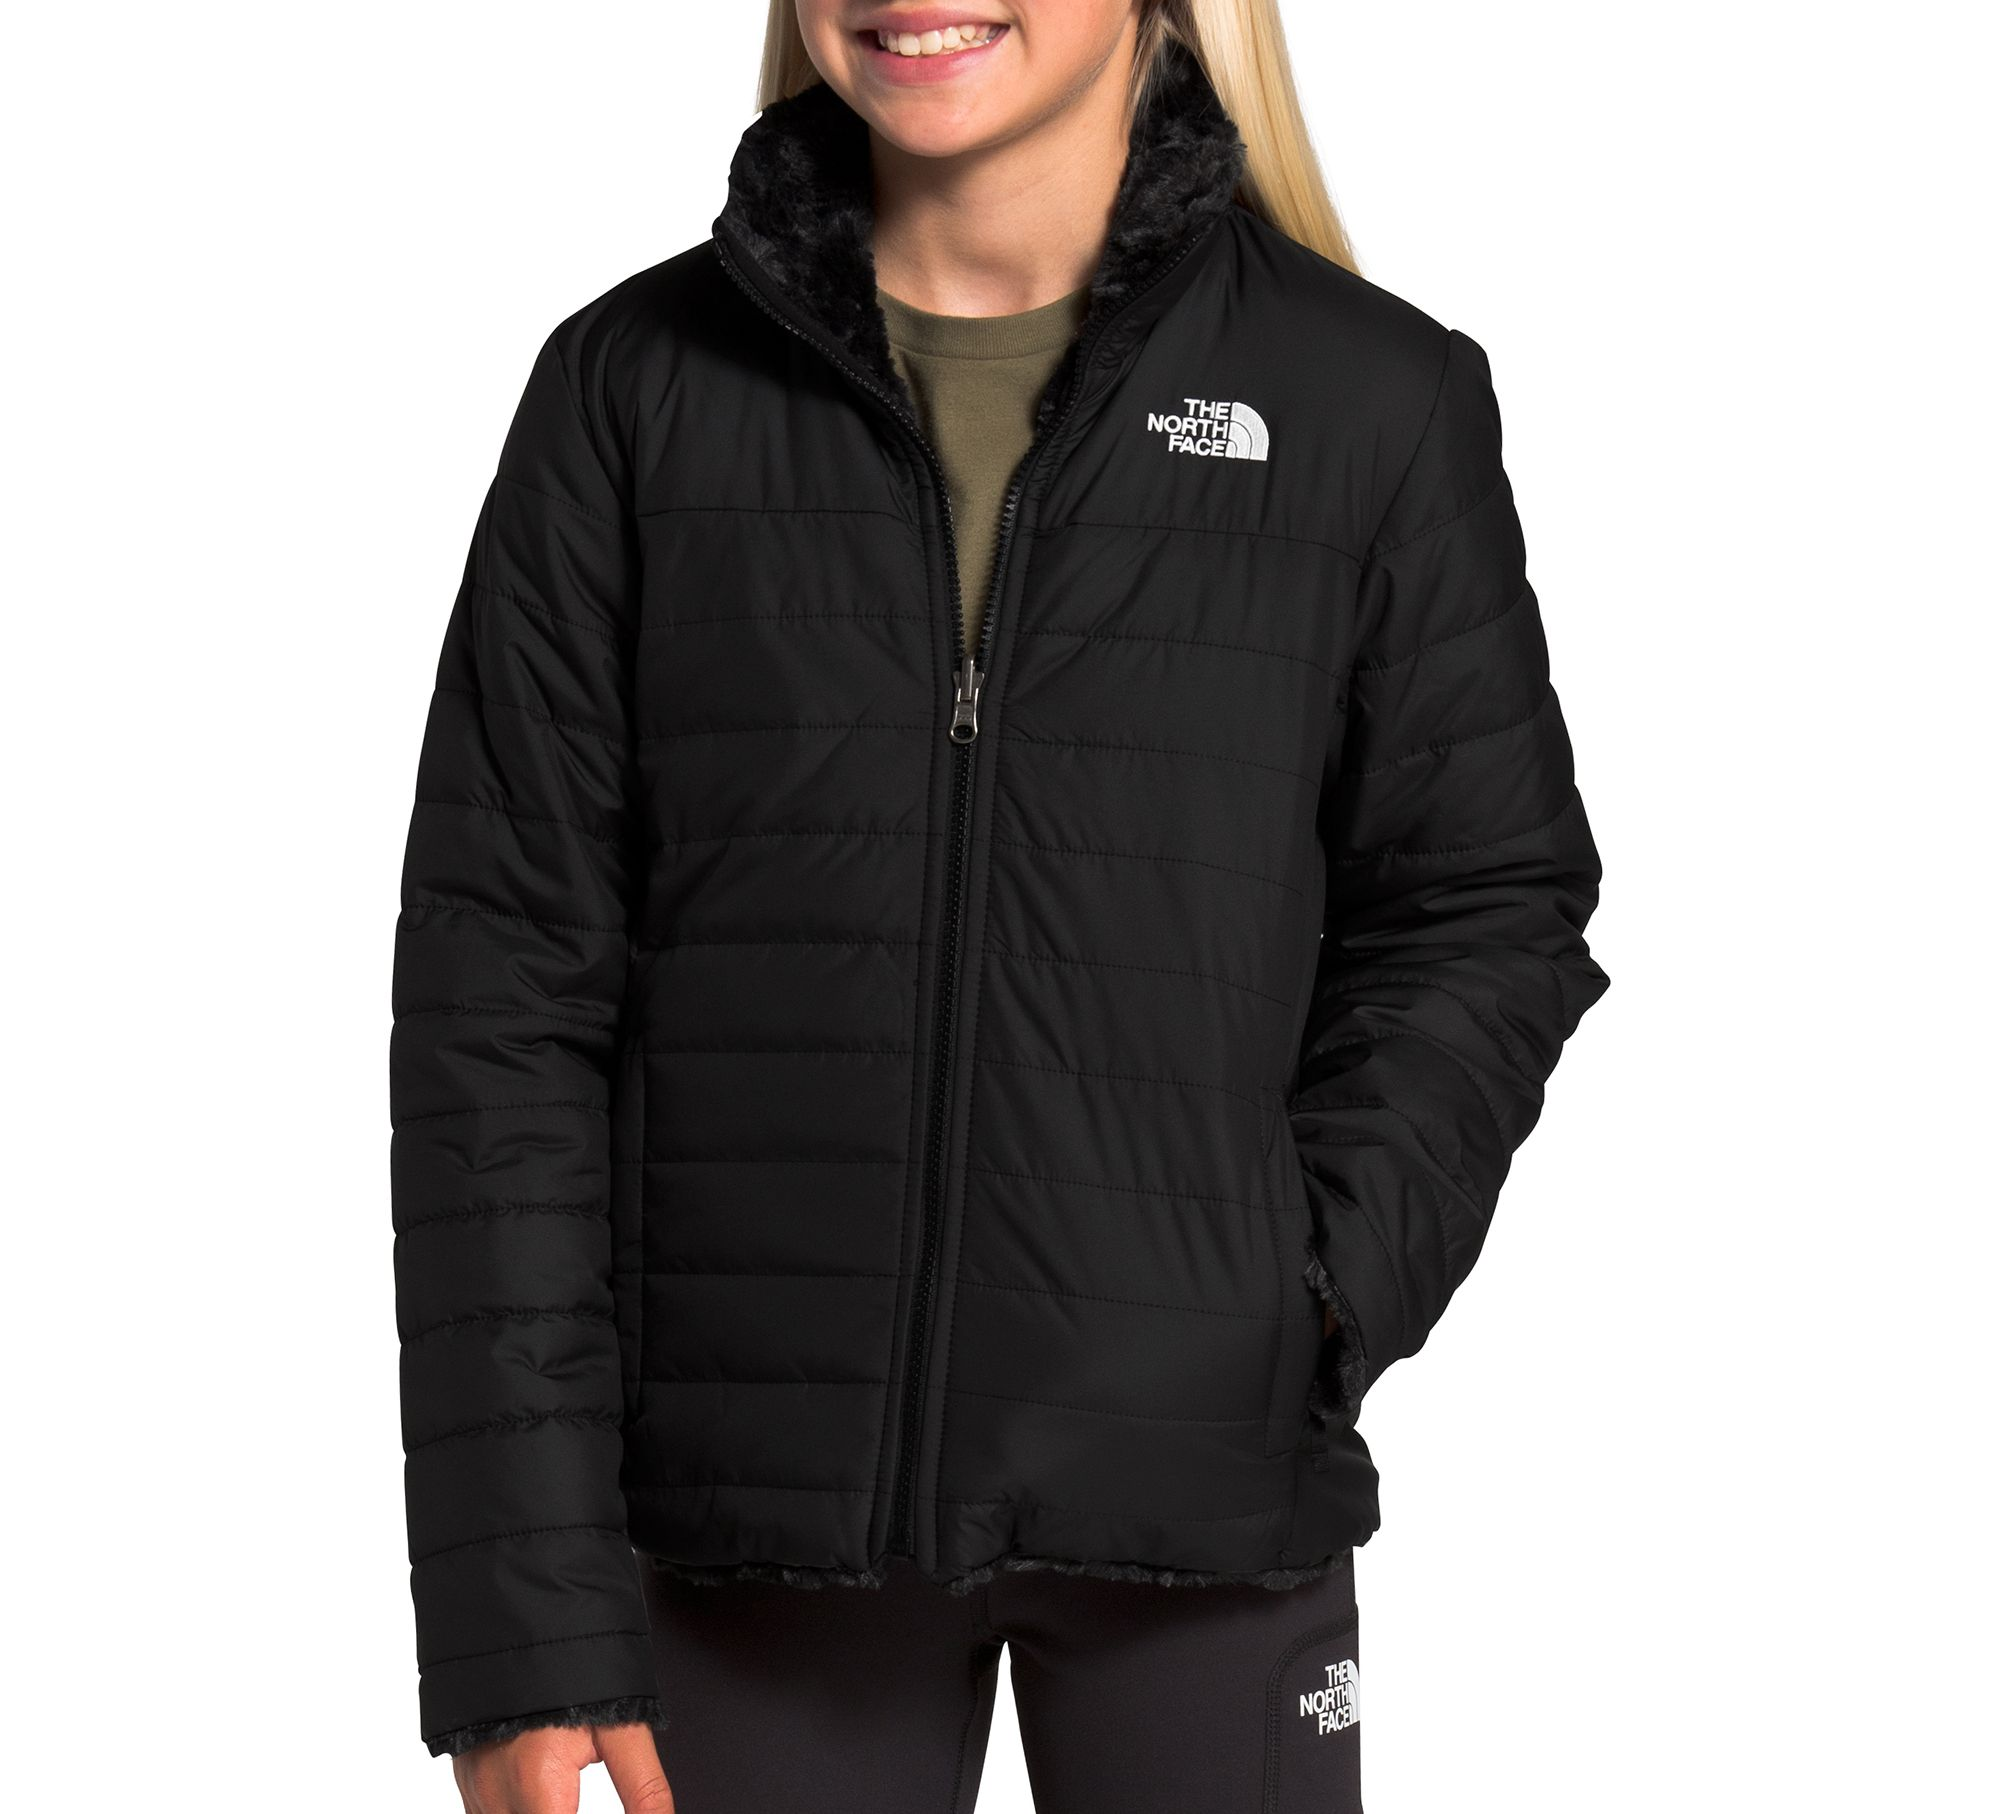 THE NORTH FACE 32- GILRS CLOTHES